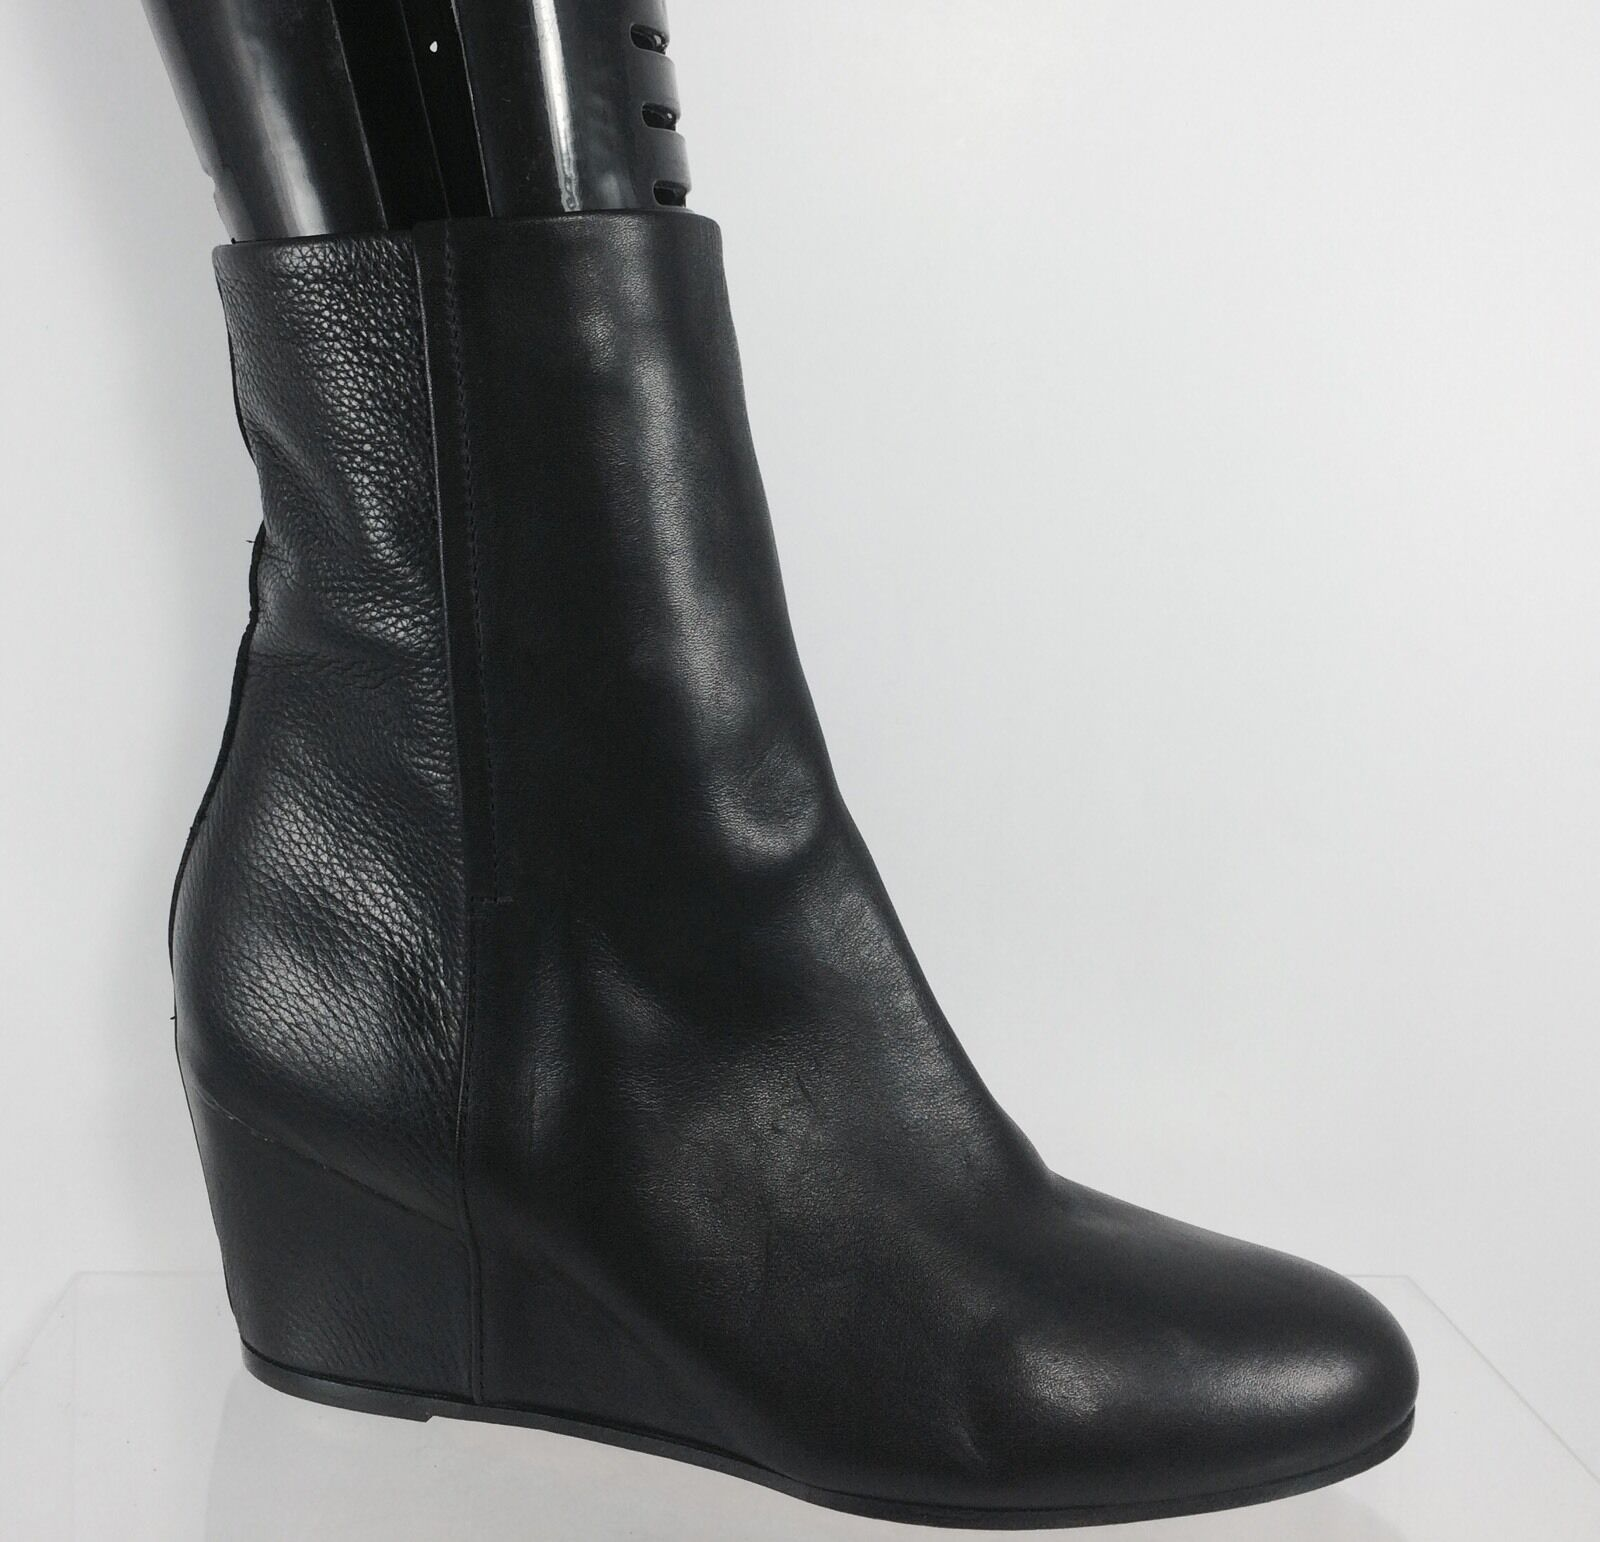 Vince Womens Black Leather Fashion Wedge Ankle Boots 9 M